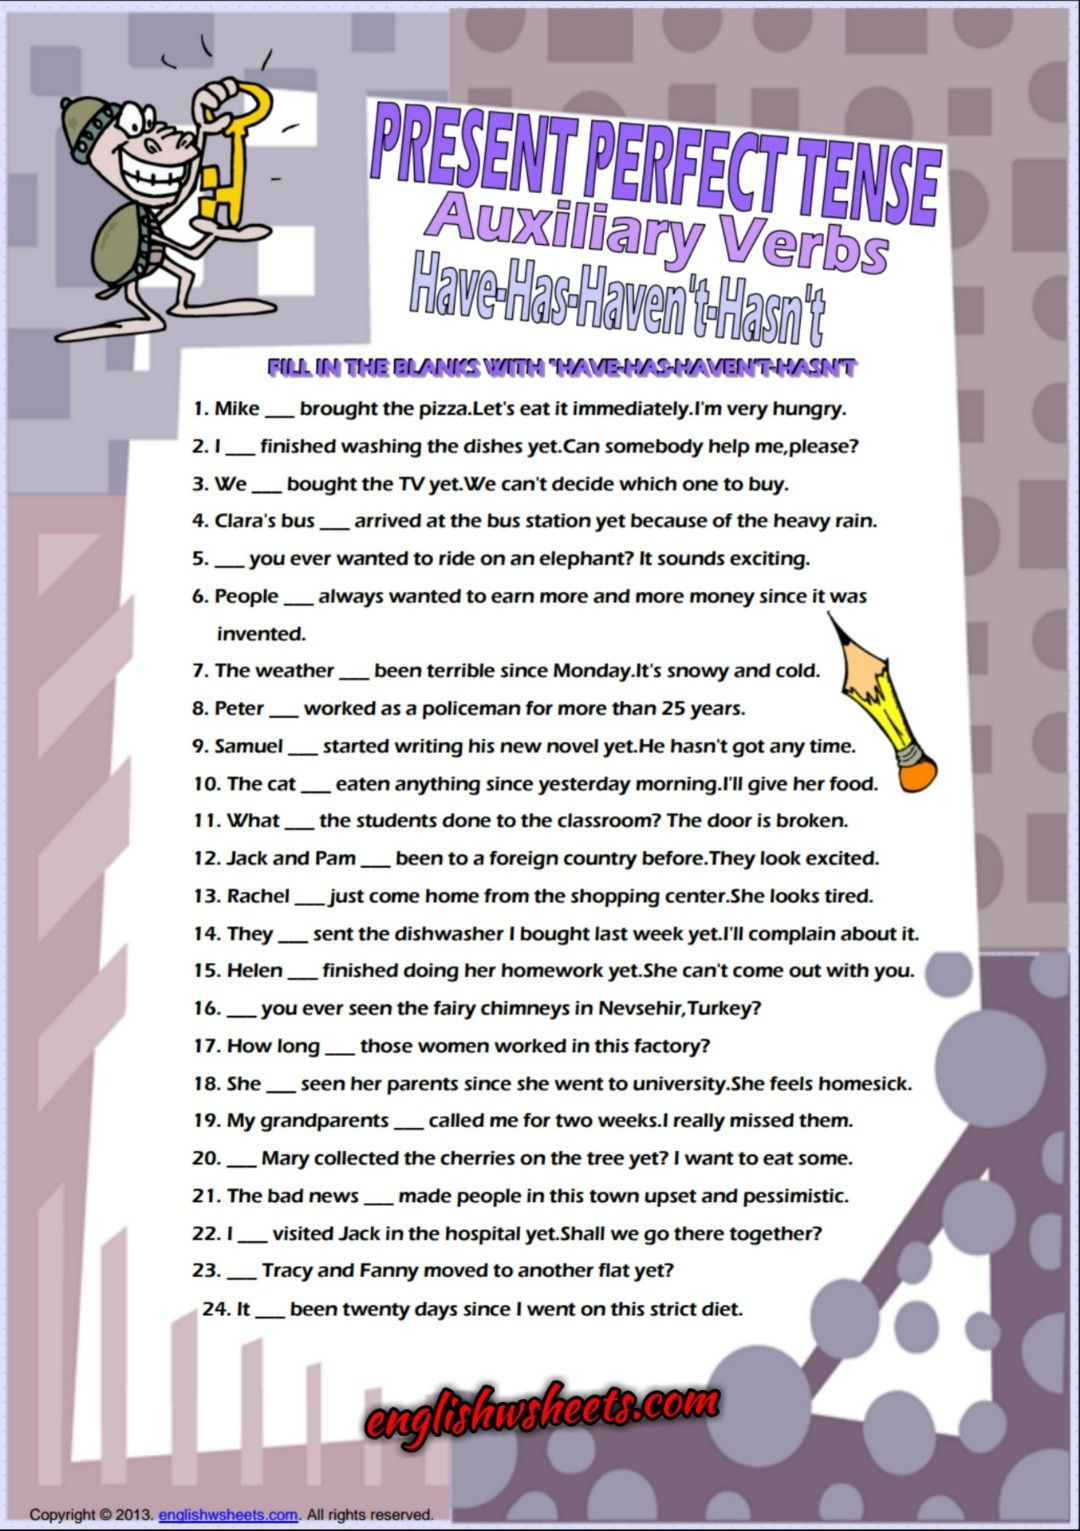 worksheet How Observant Are You Worksheet auxiliary verbs have has present perfect tense worksheet esl 2 worksheet